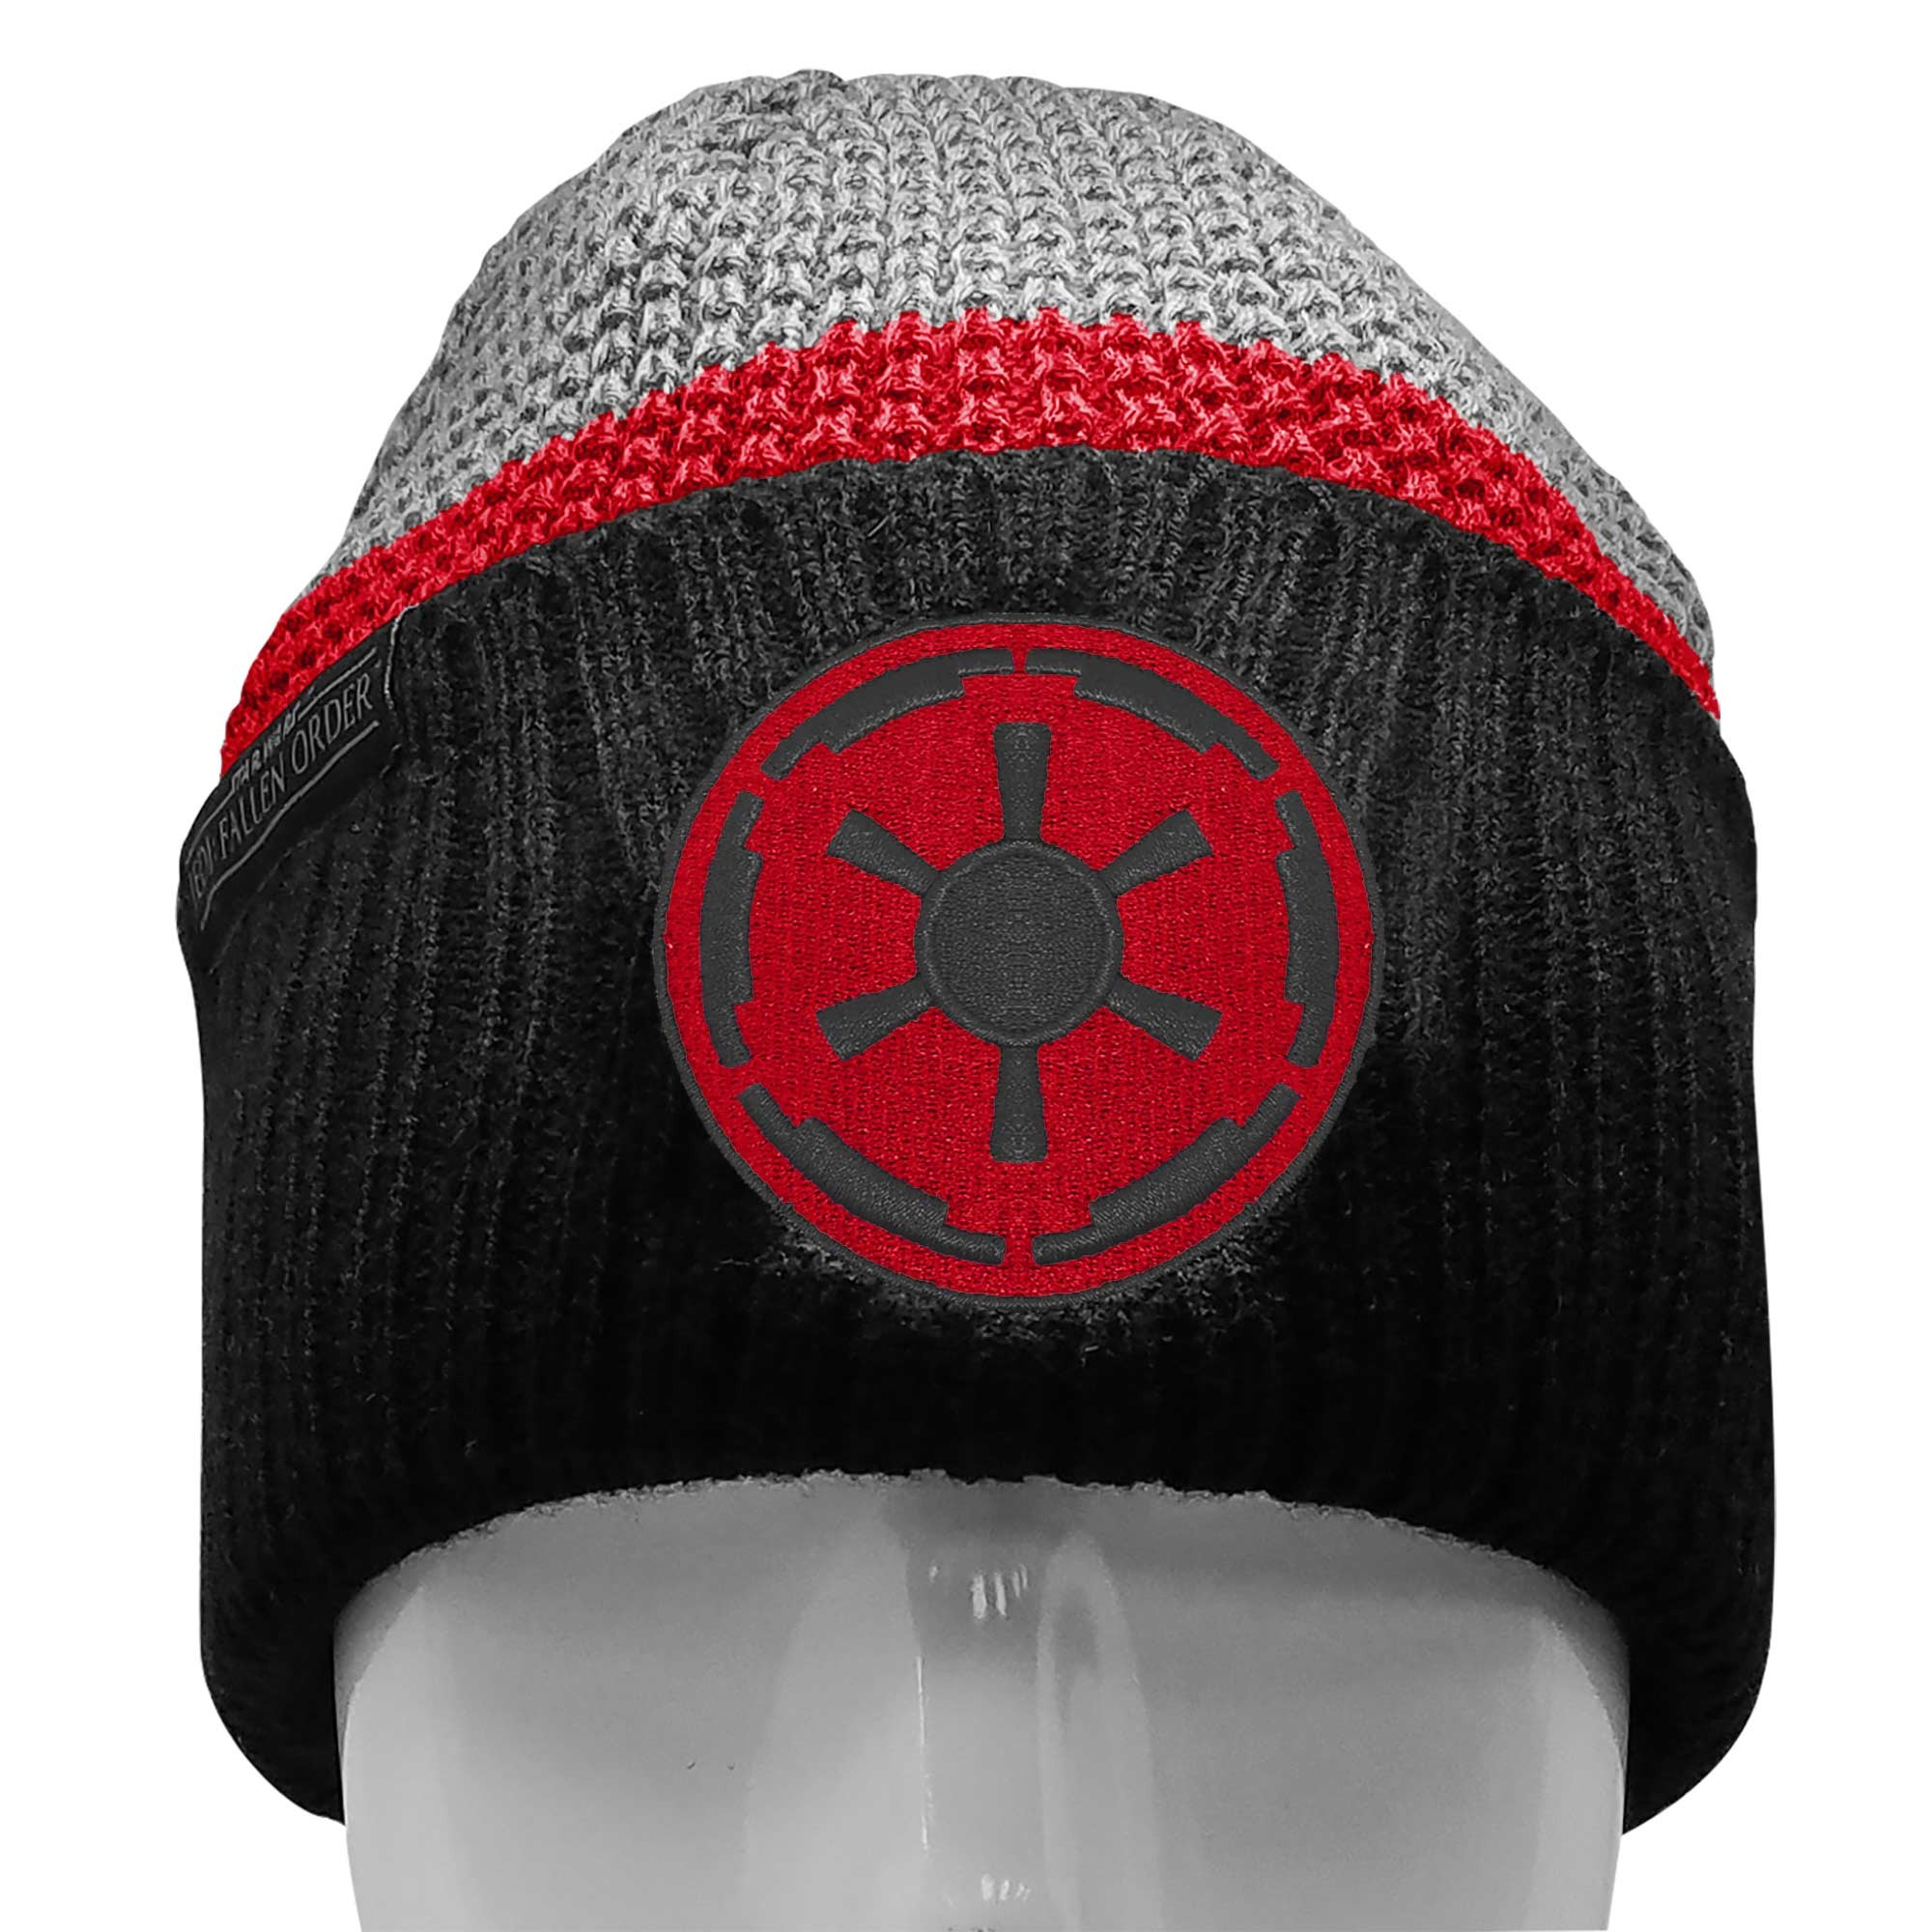 Star Wars Beanie with a Jedi Fallen Order Empire Patch, Image 1